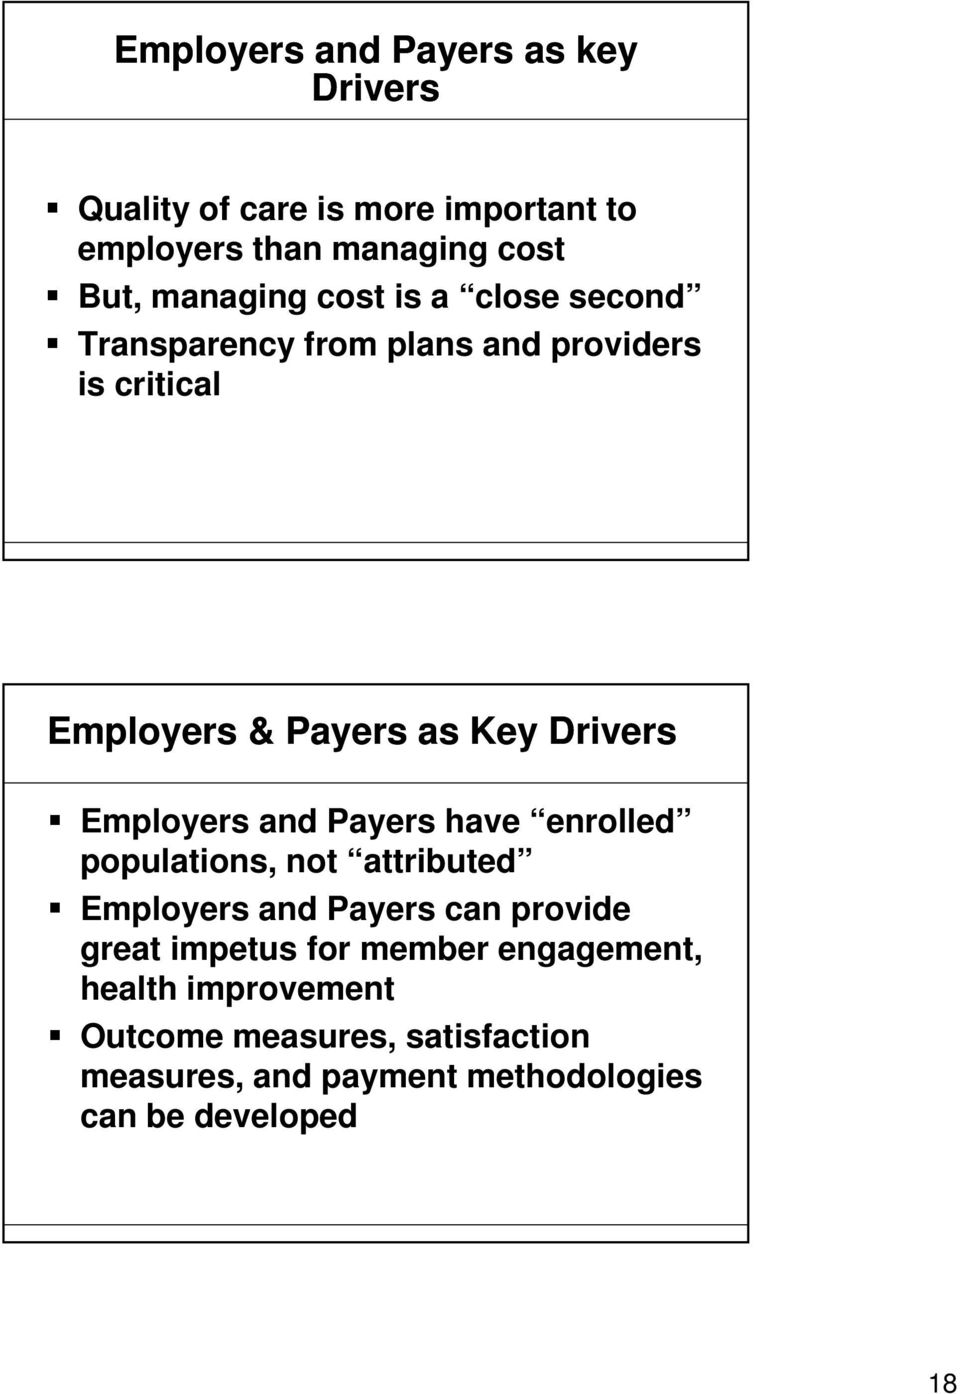 Employers and Payers have enrolled populations, not attributed Employers and Payers can provide great impetus for